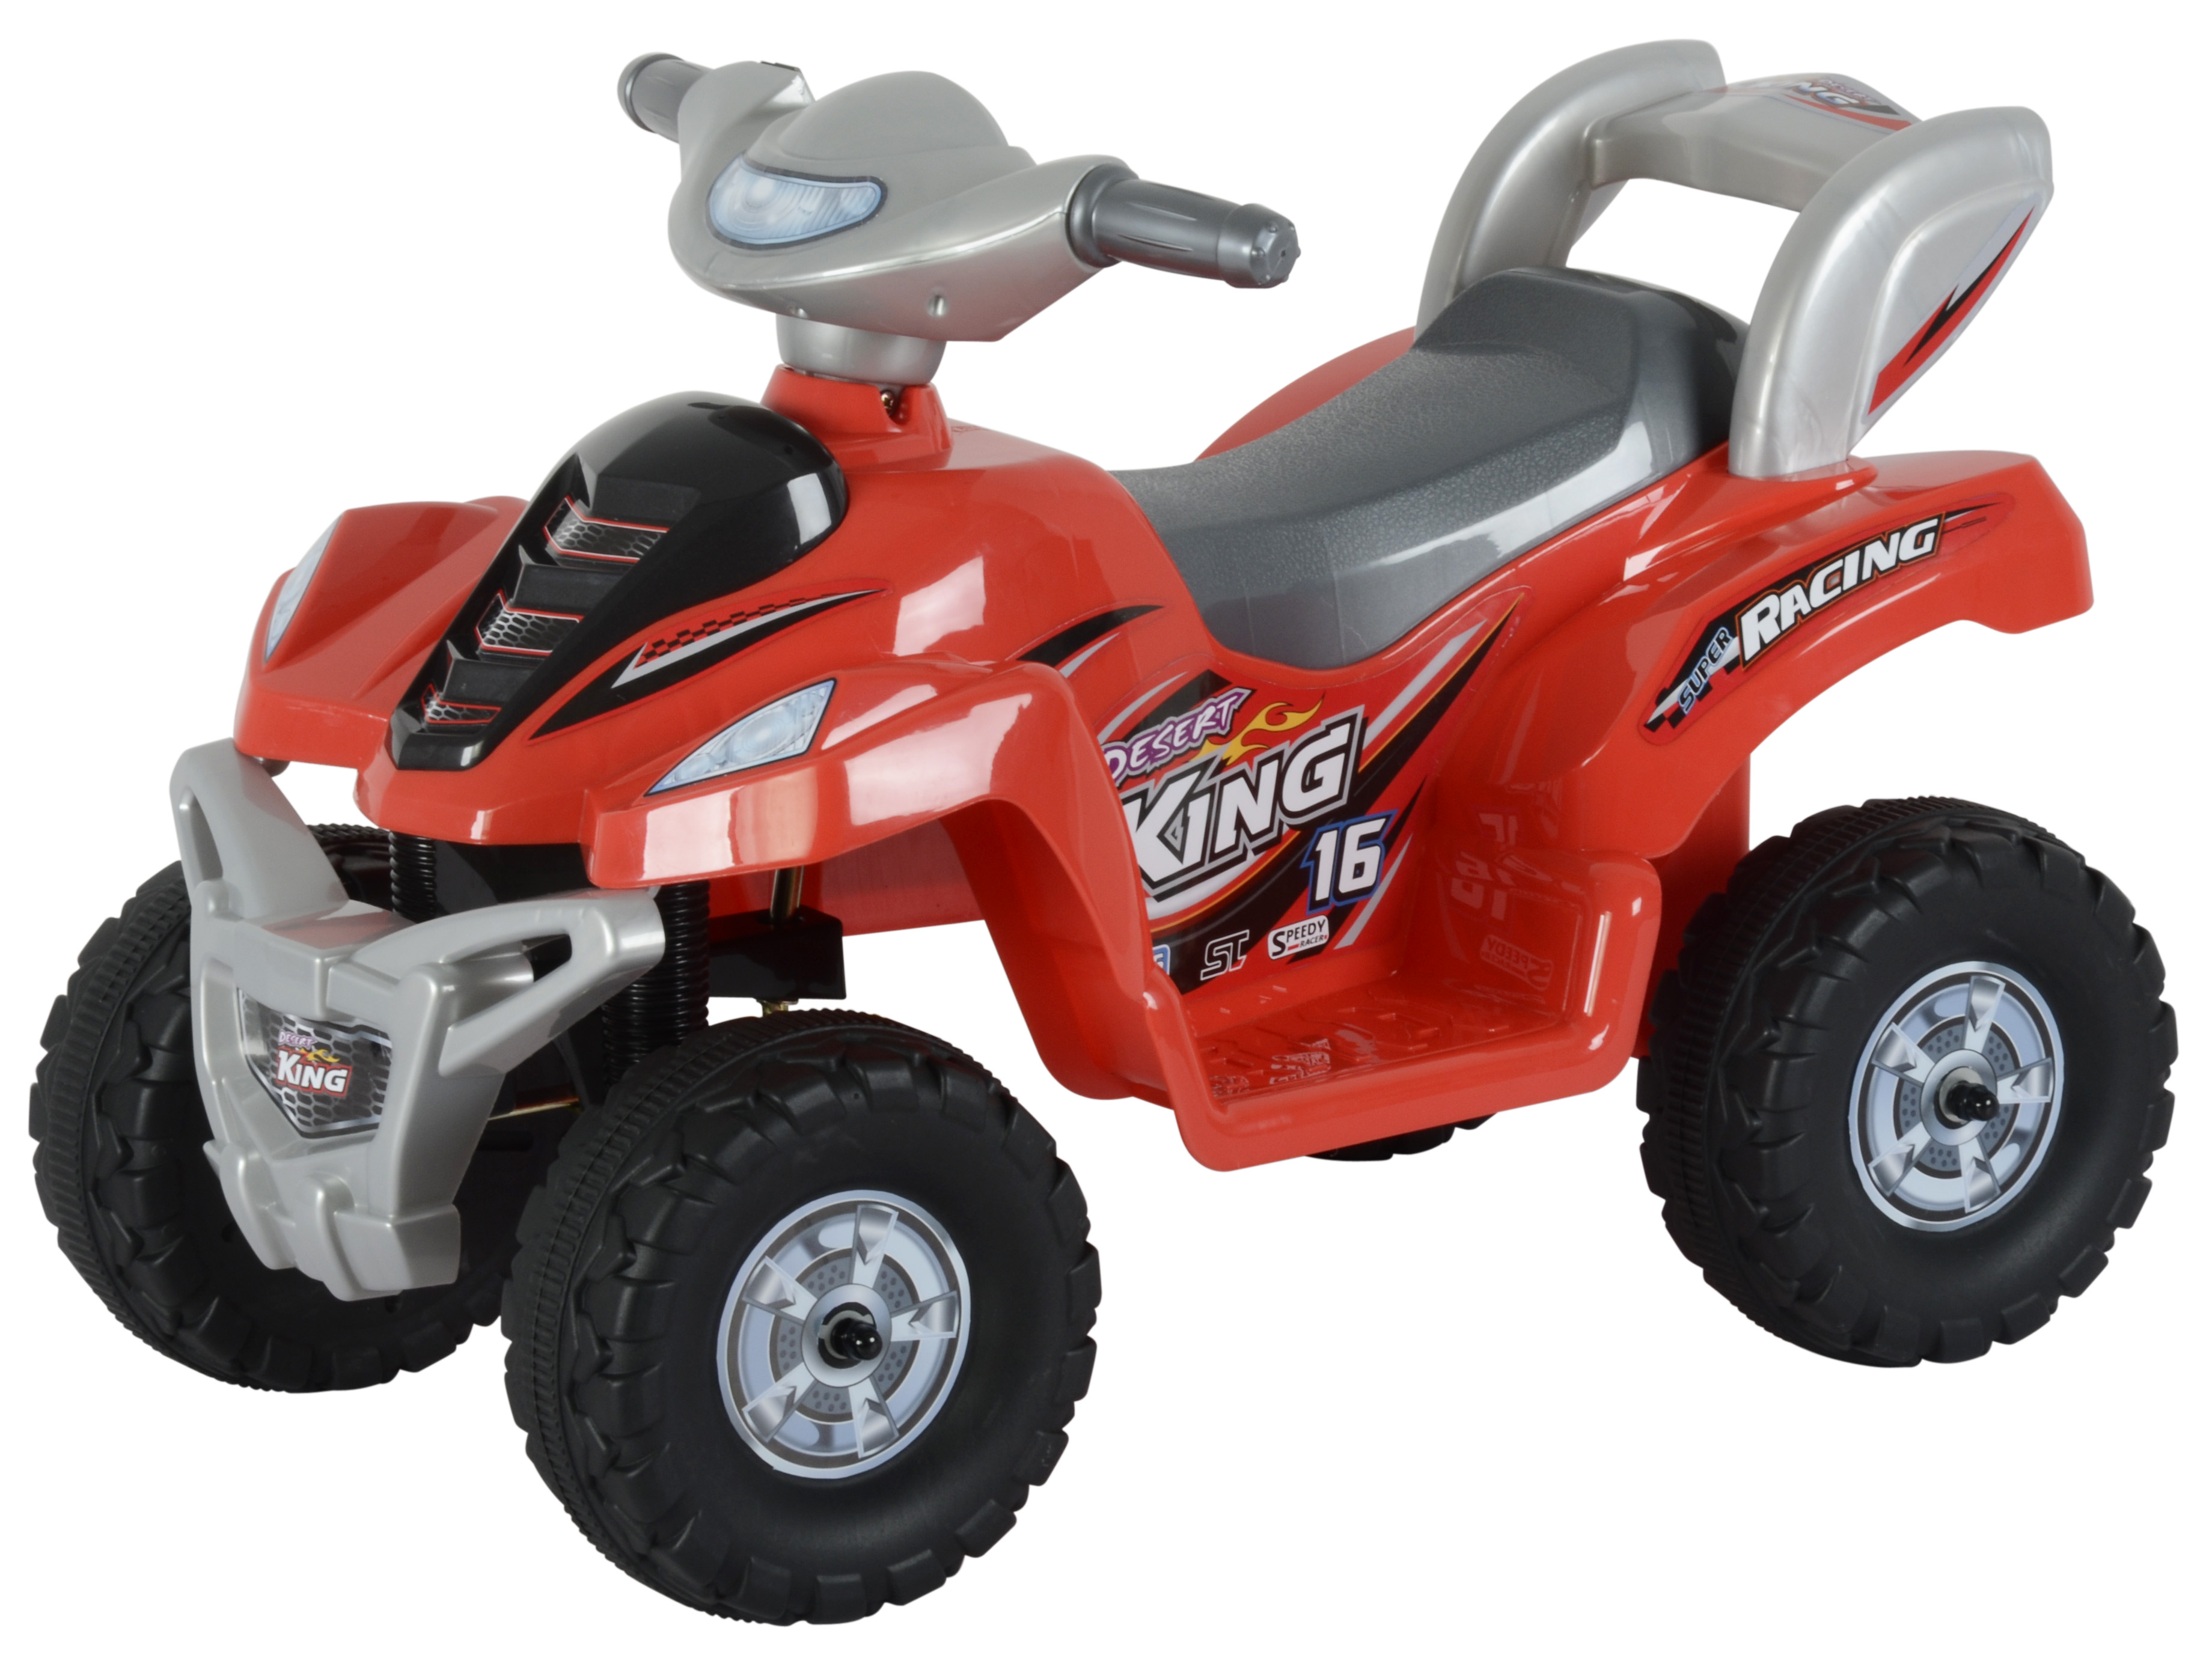 Safari-King-Electric-Ride-On-ATV-Bike-Kids-Toy-Quad-Car-Rechargeable-Battery